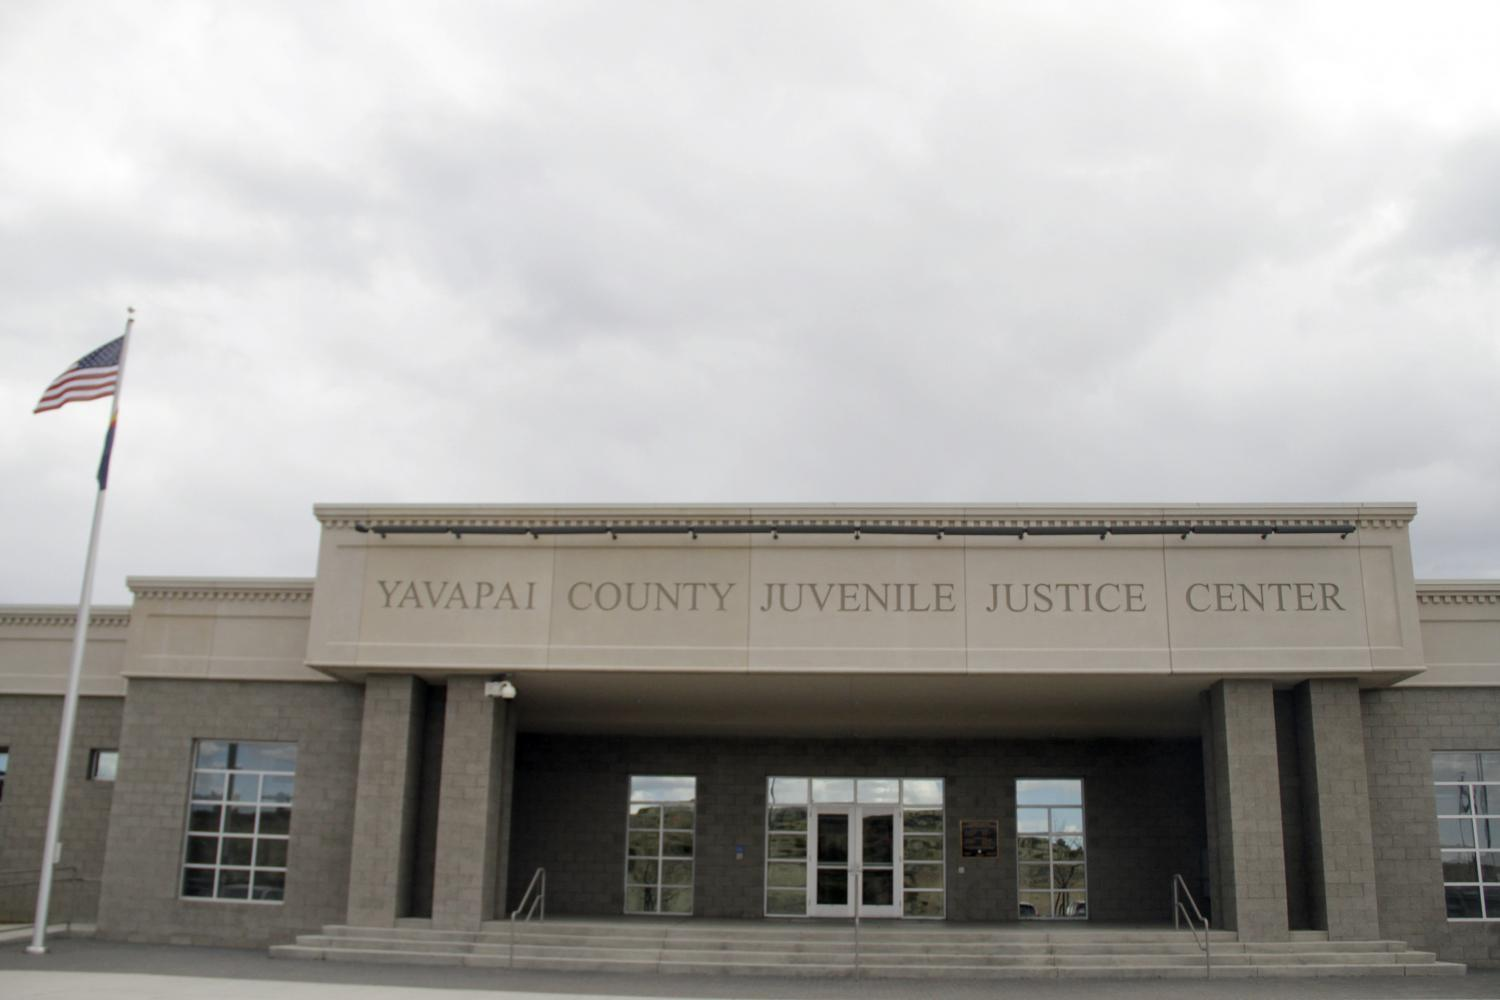 Yavapai County Juvenile Justice Center